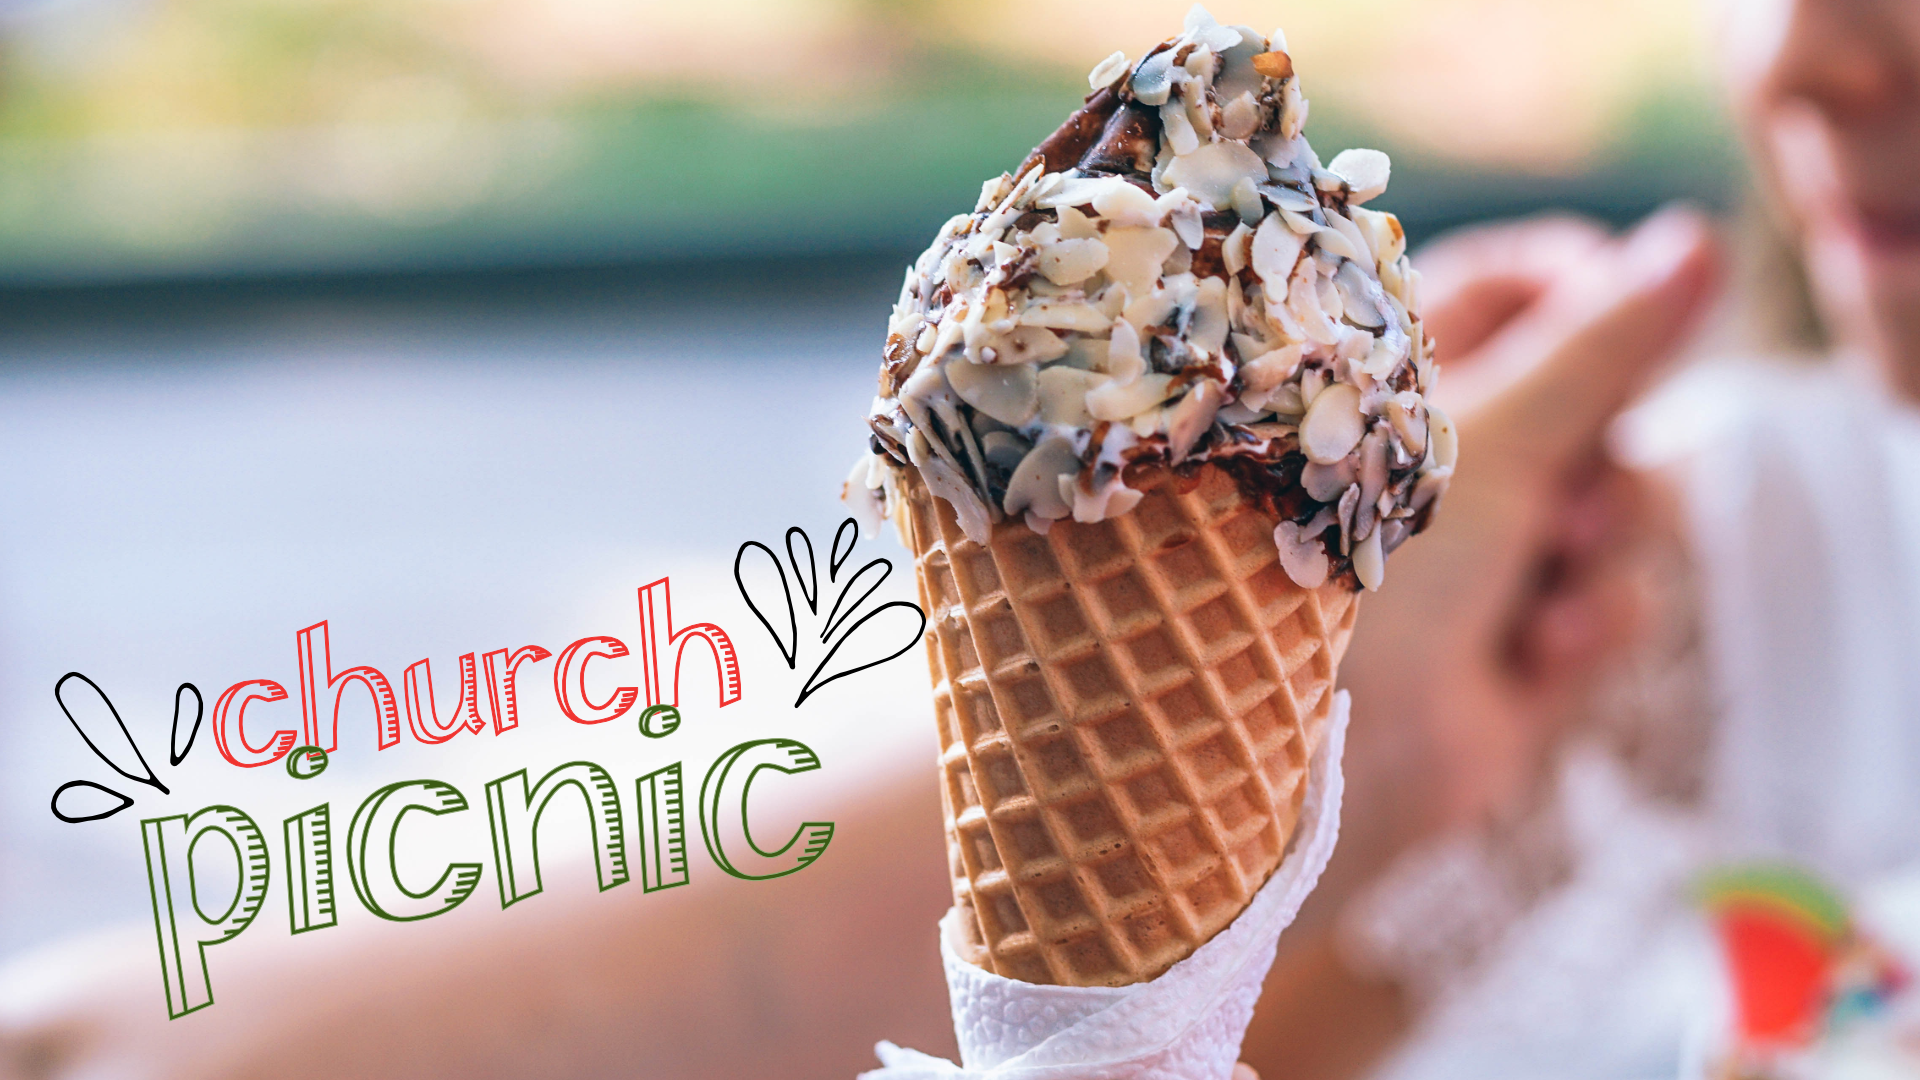 Church Picnic 2019 No Date.png